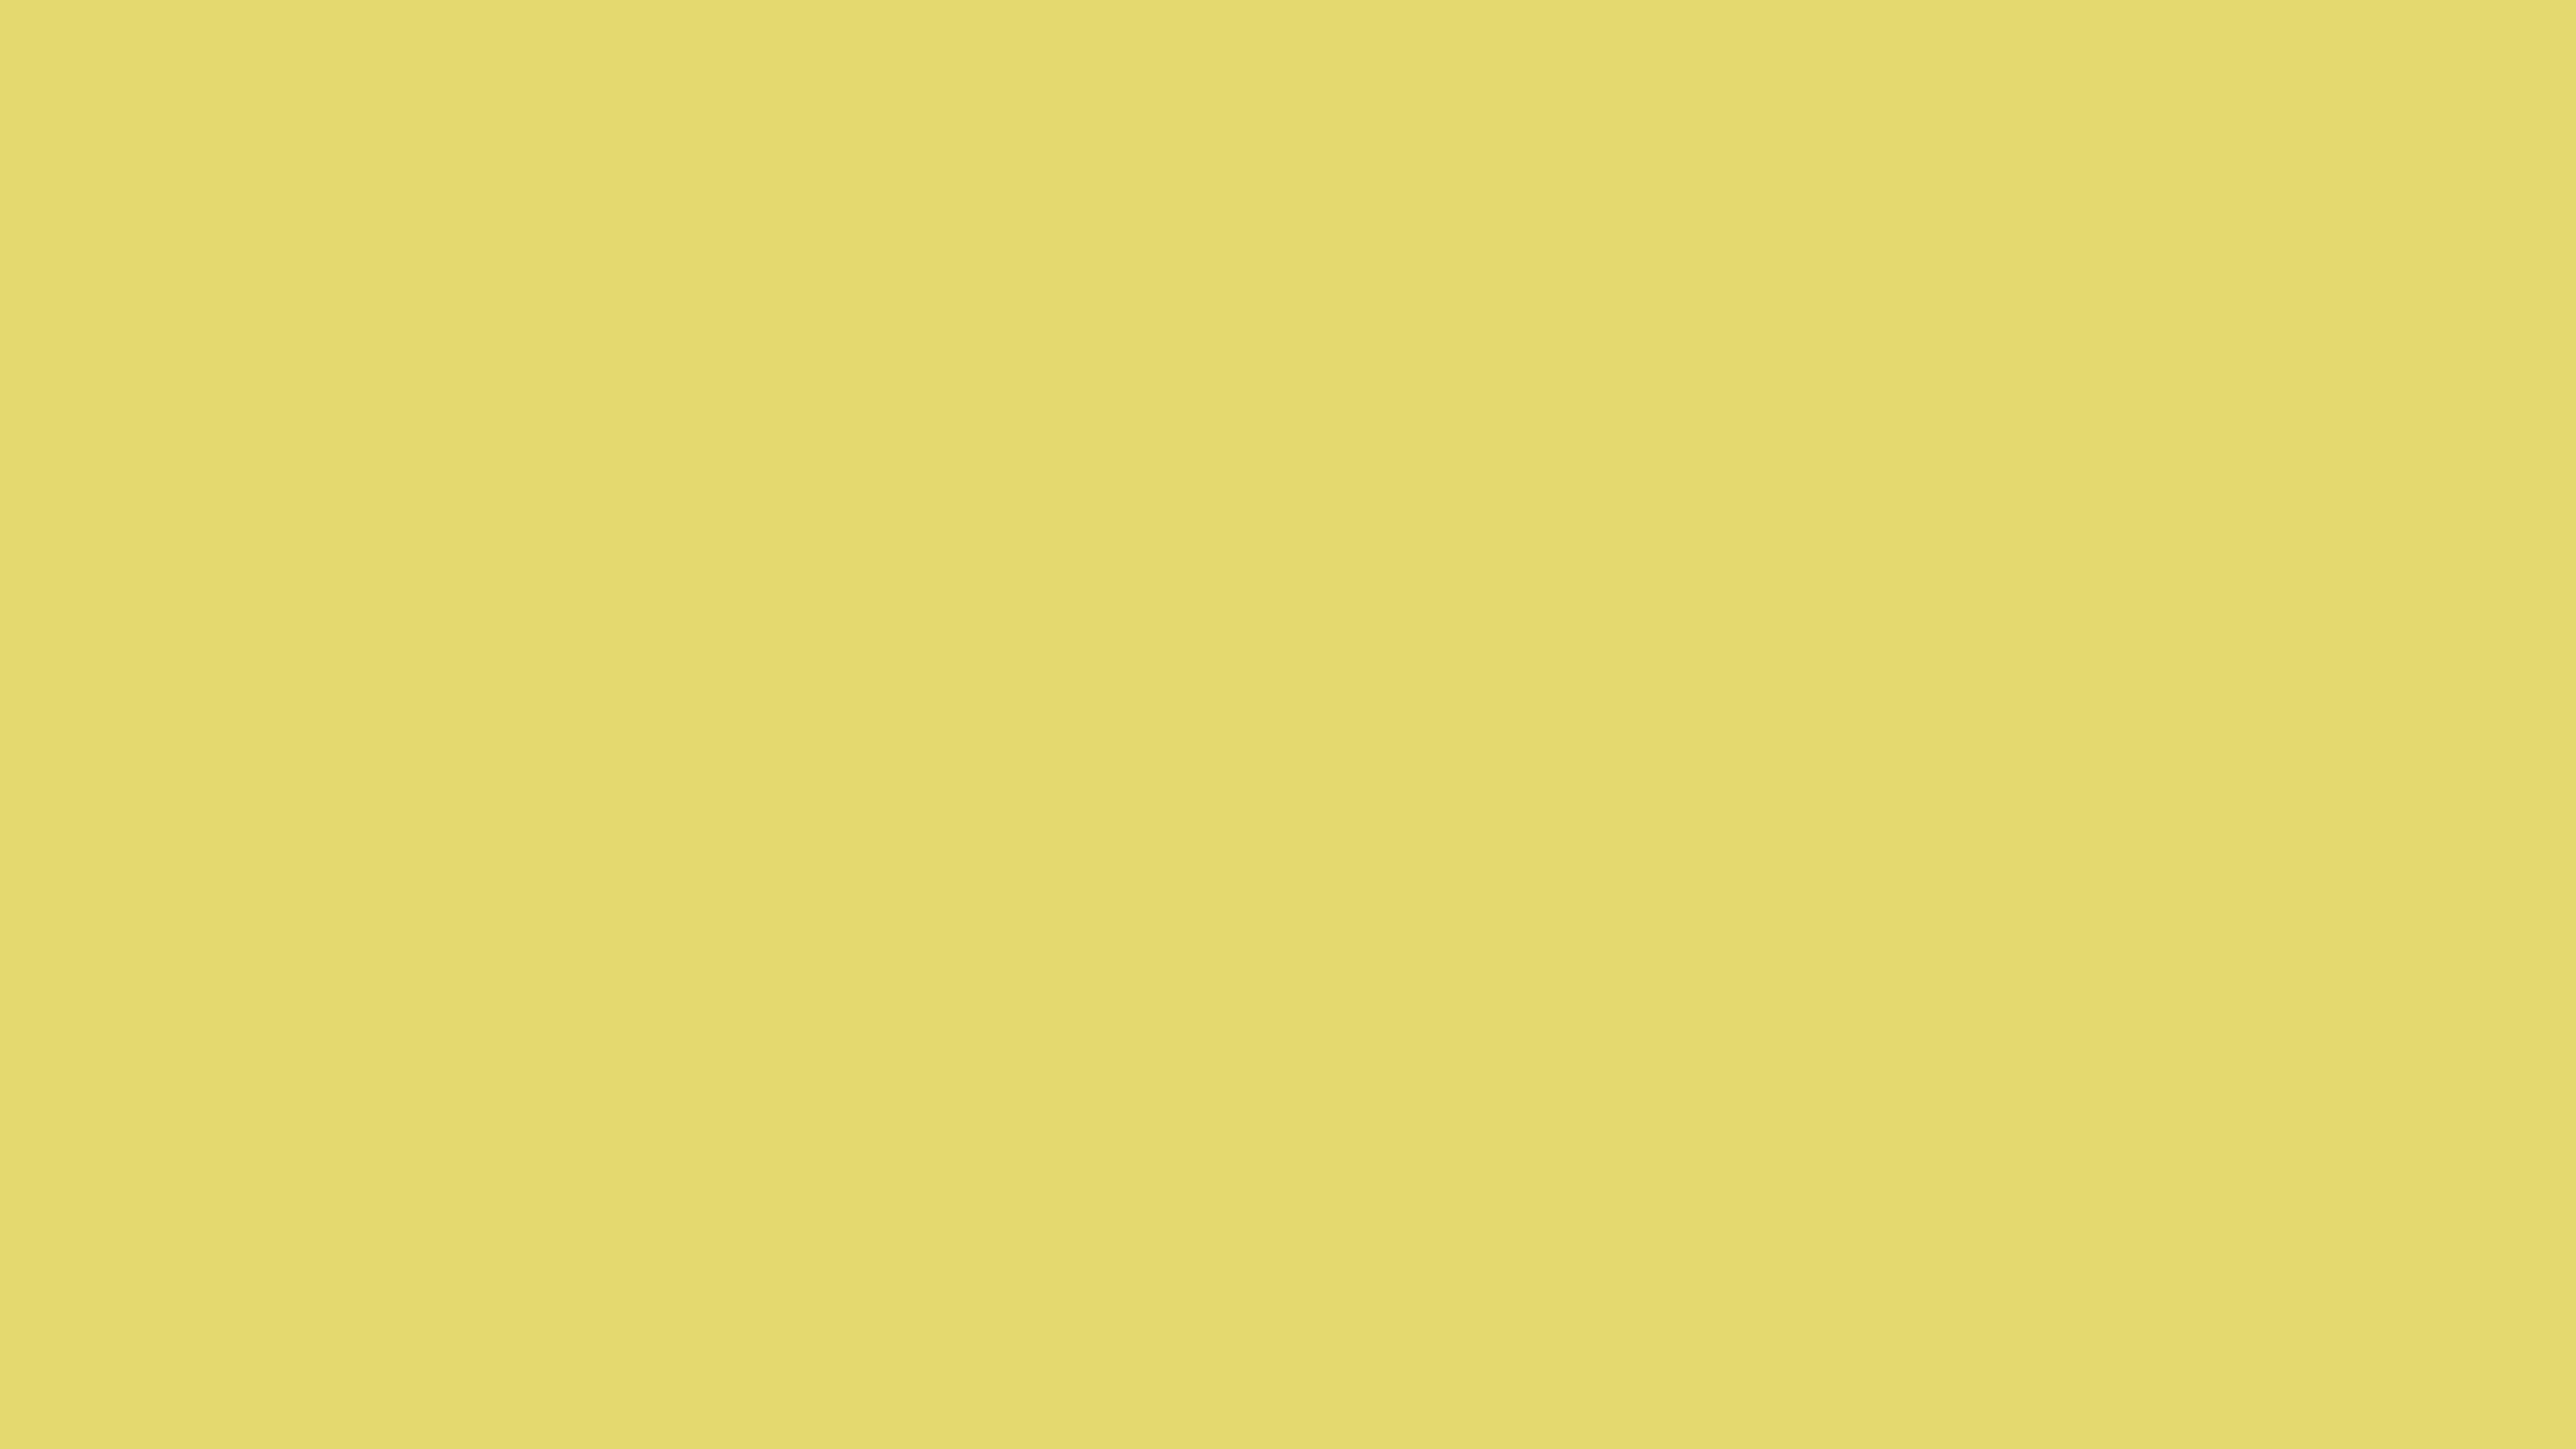 4096x2304 Straw Solid Color Background